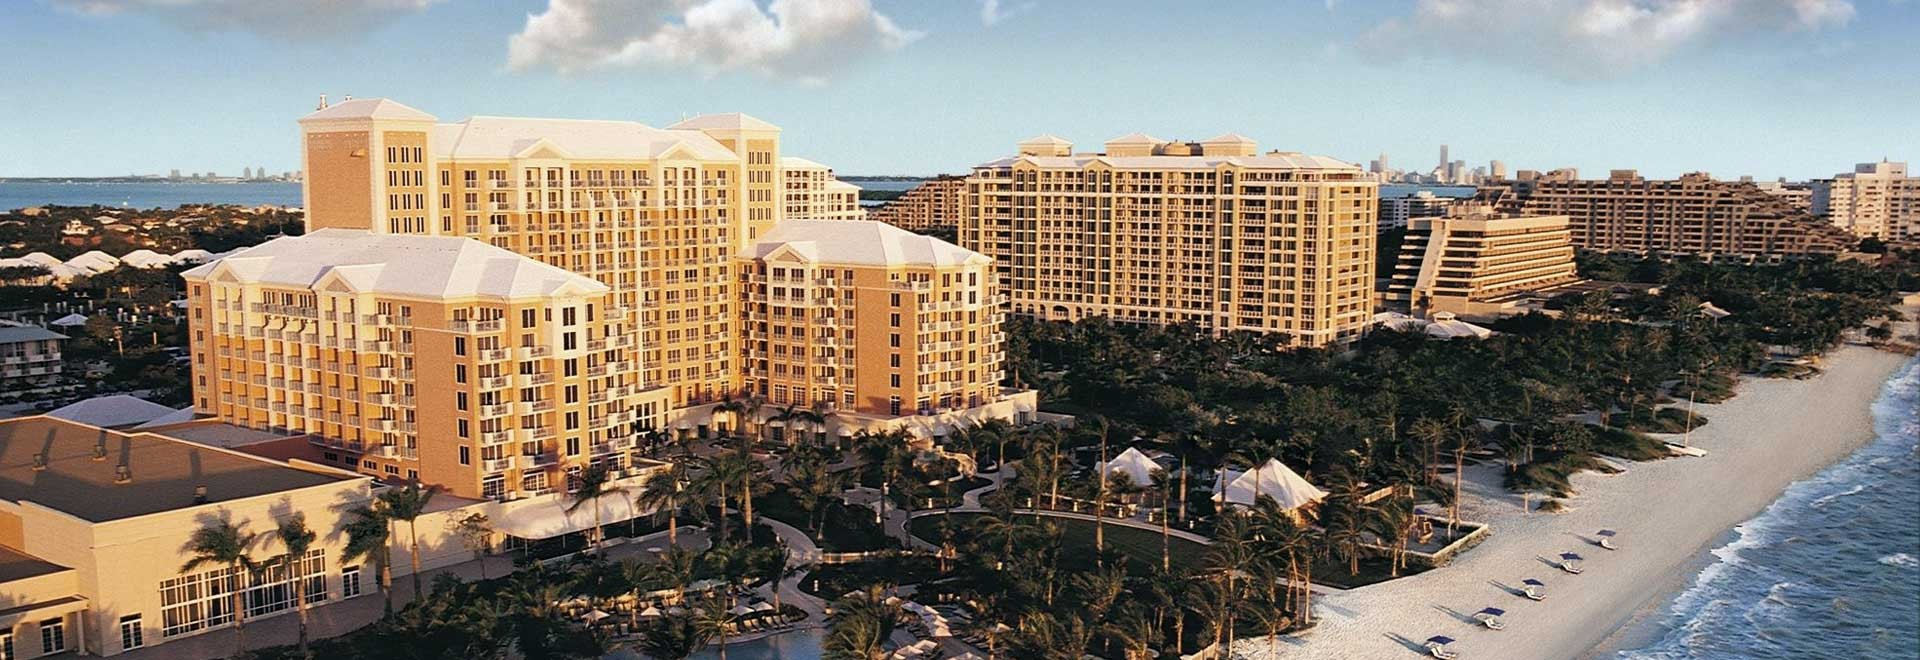 The Ritz-Carlton Key Biscayne, Florida - Book. Travel. Play.